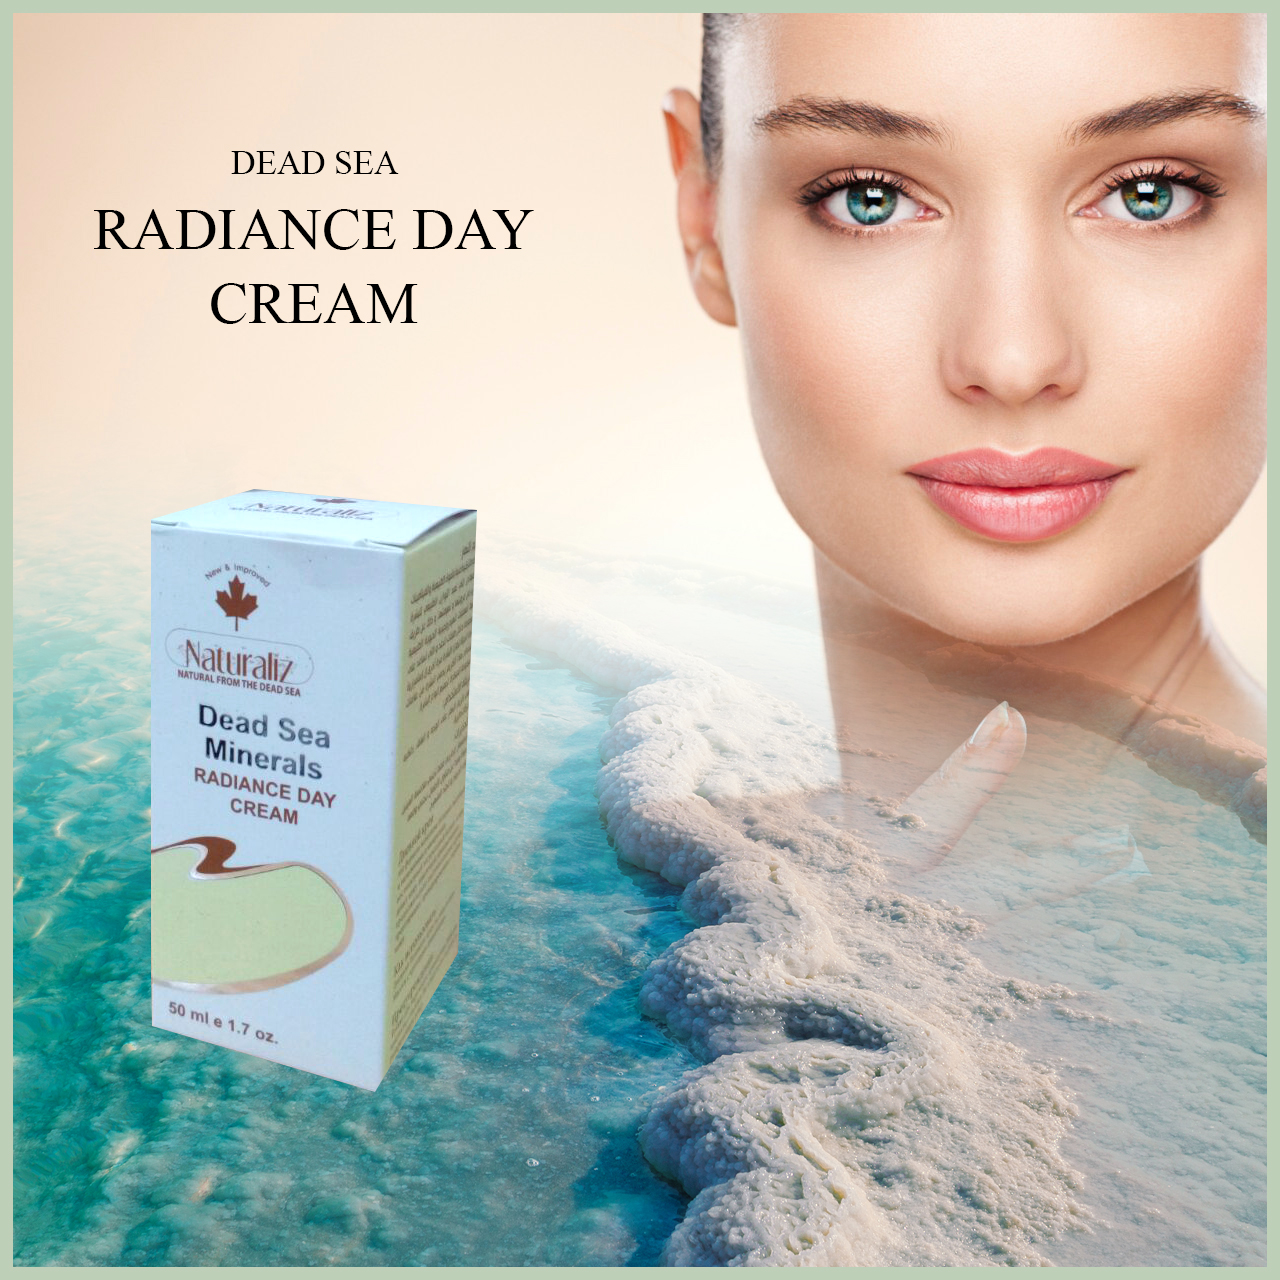 Radiance Day Cream